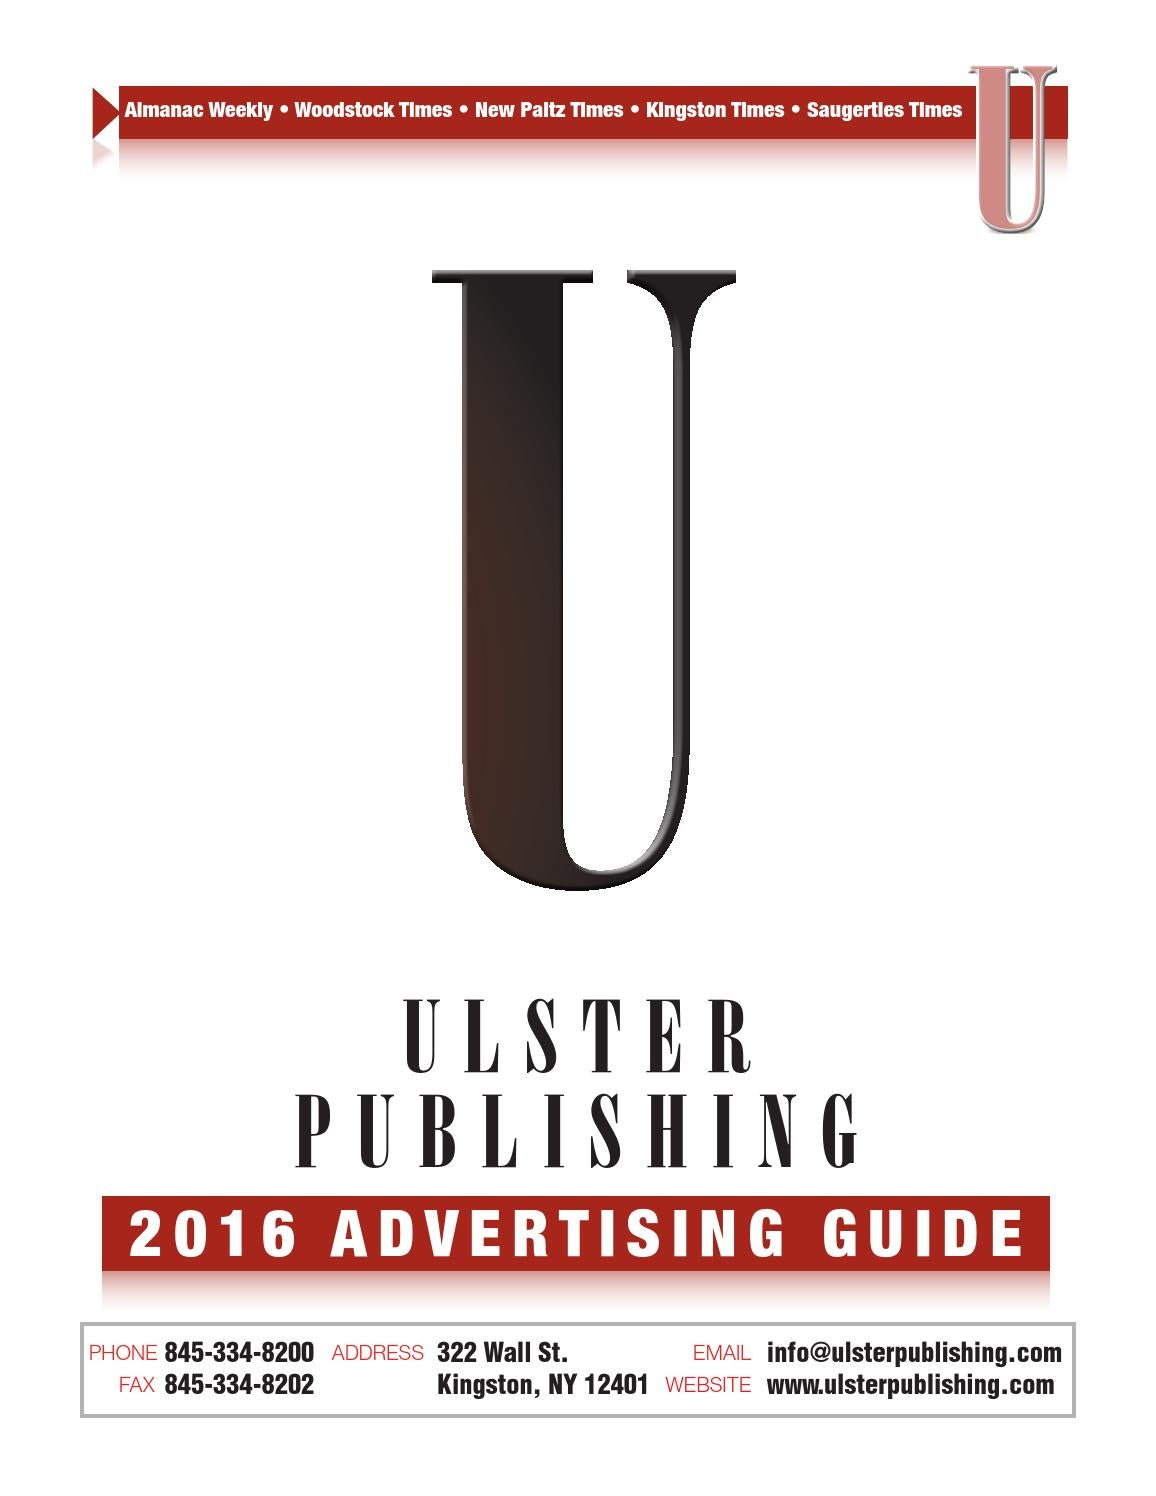 Ulster Publishing marketing guide 2016 by Ulster Publishing